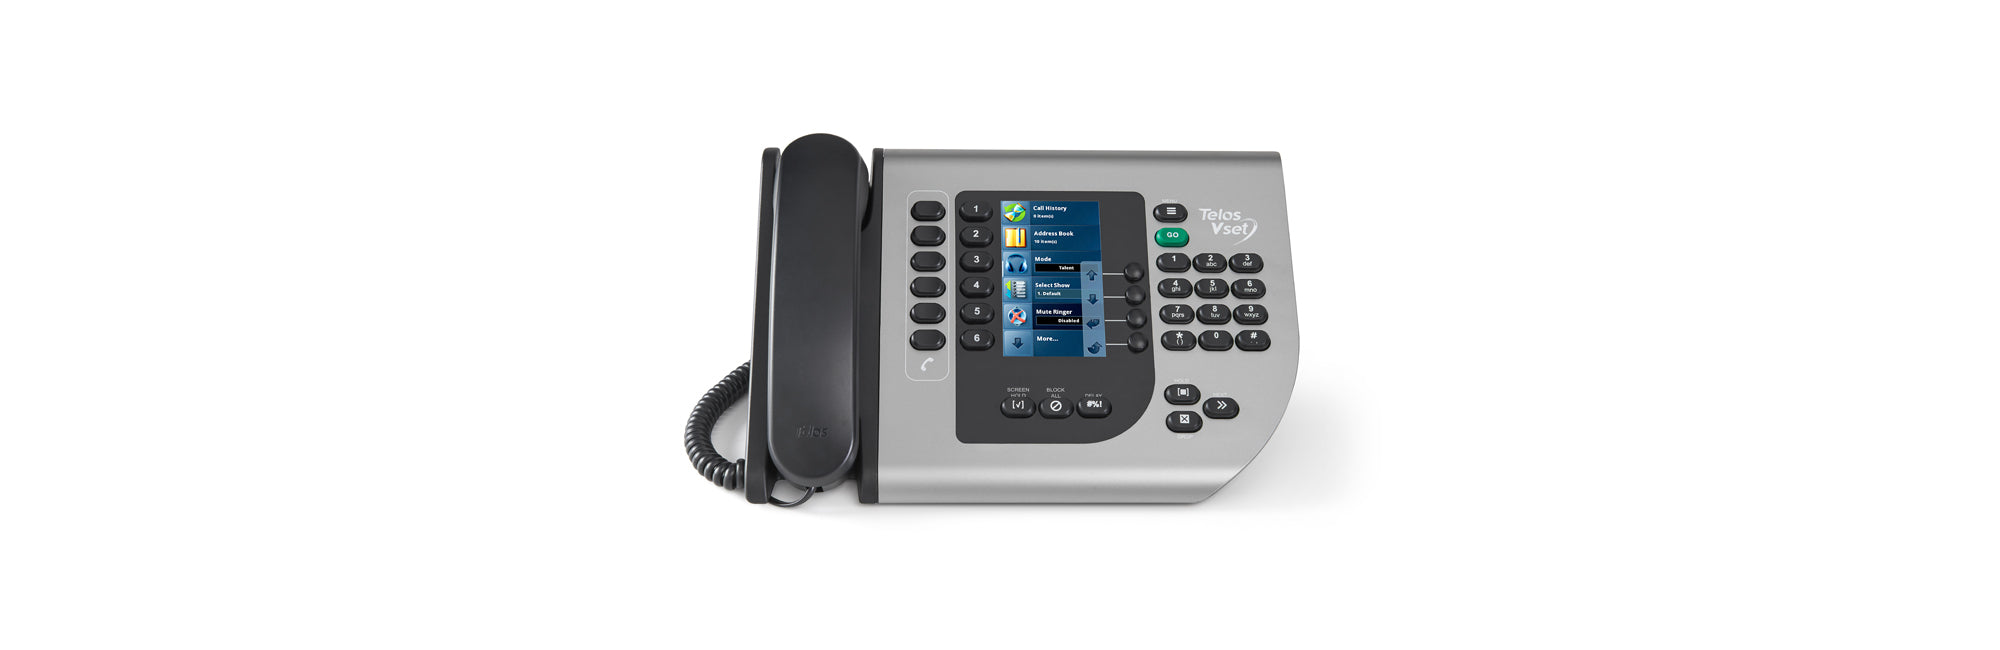 Telos Alliance - VSet Telephone - 305broadcast